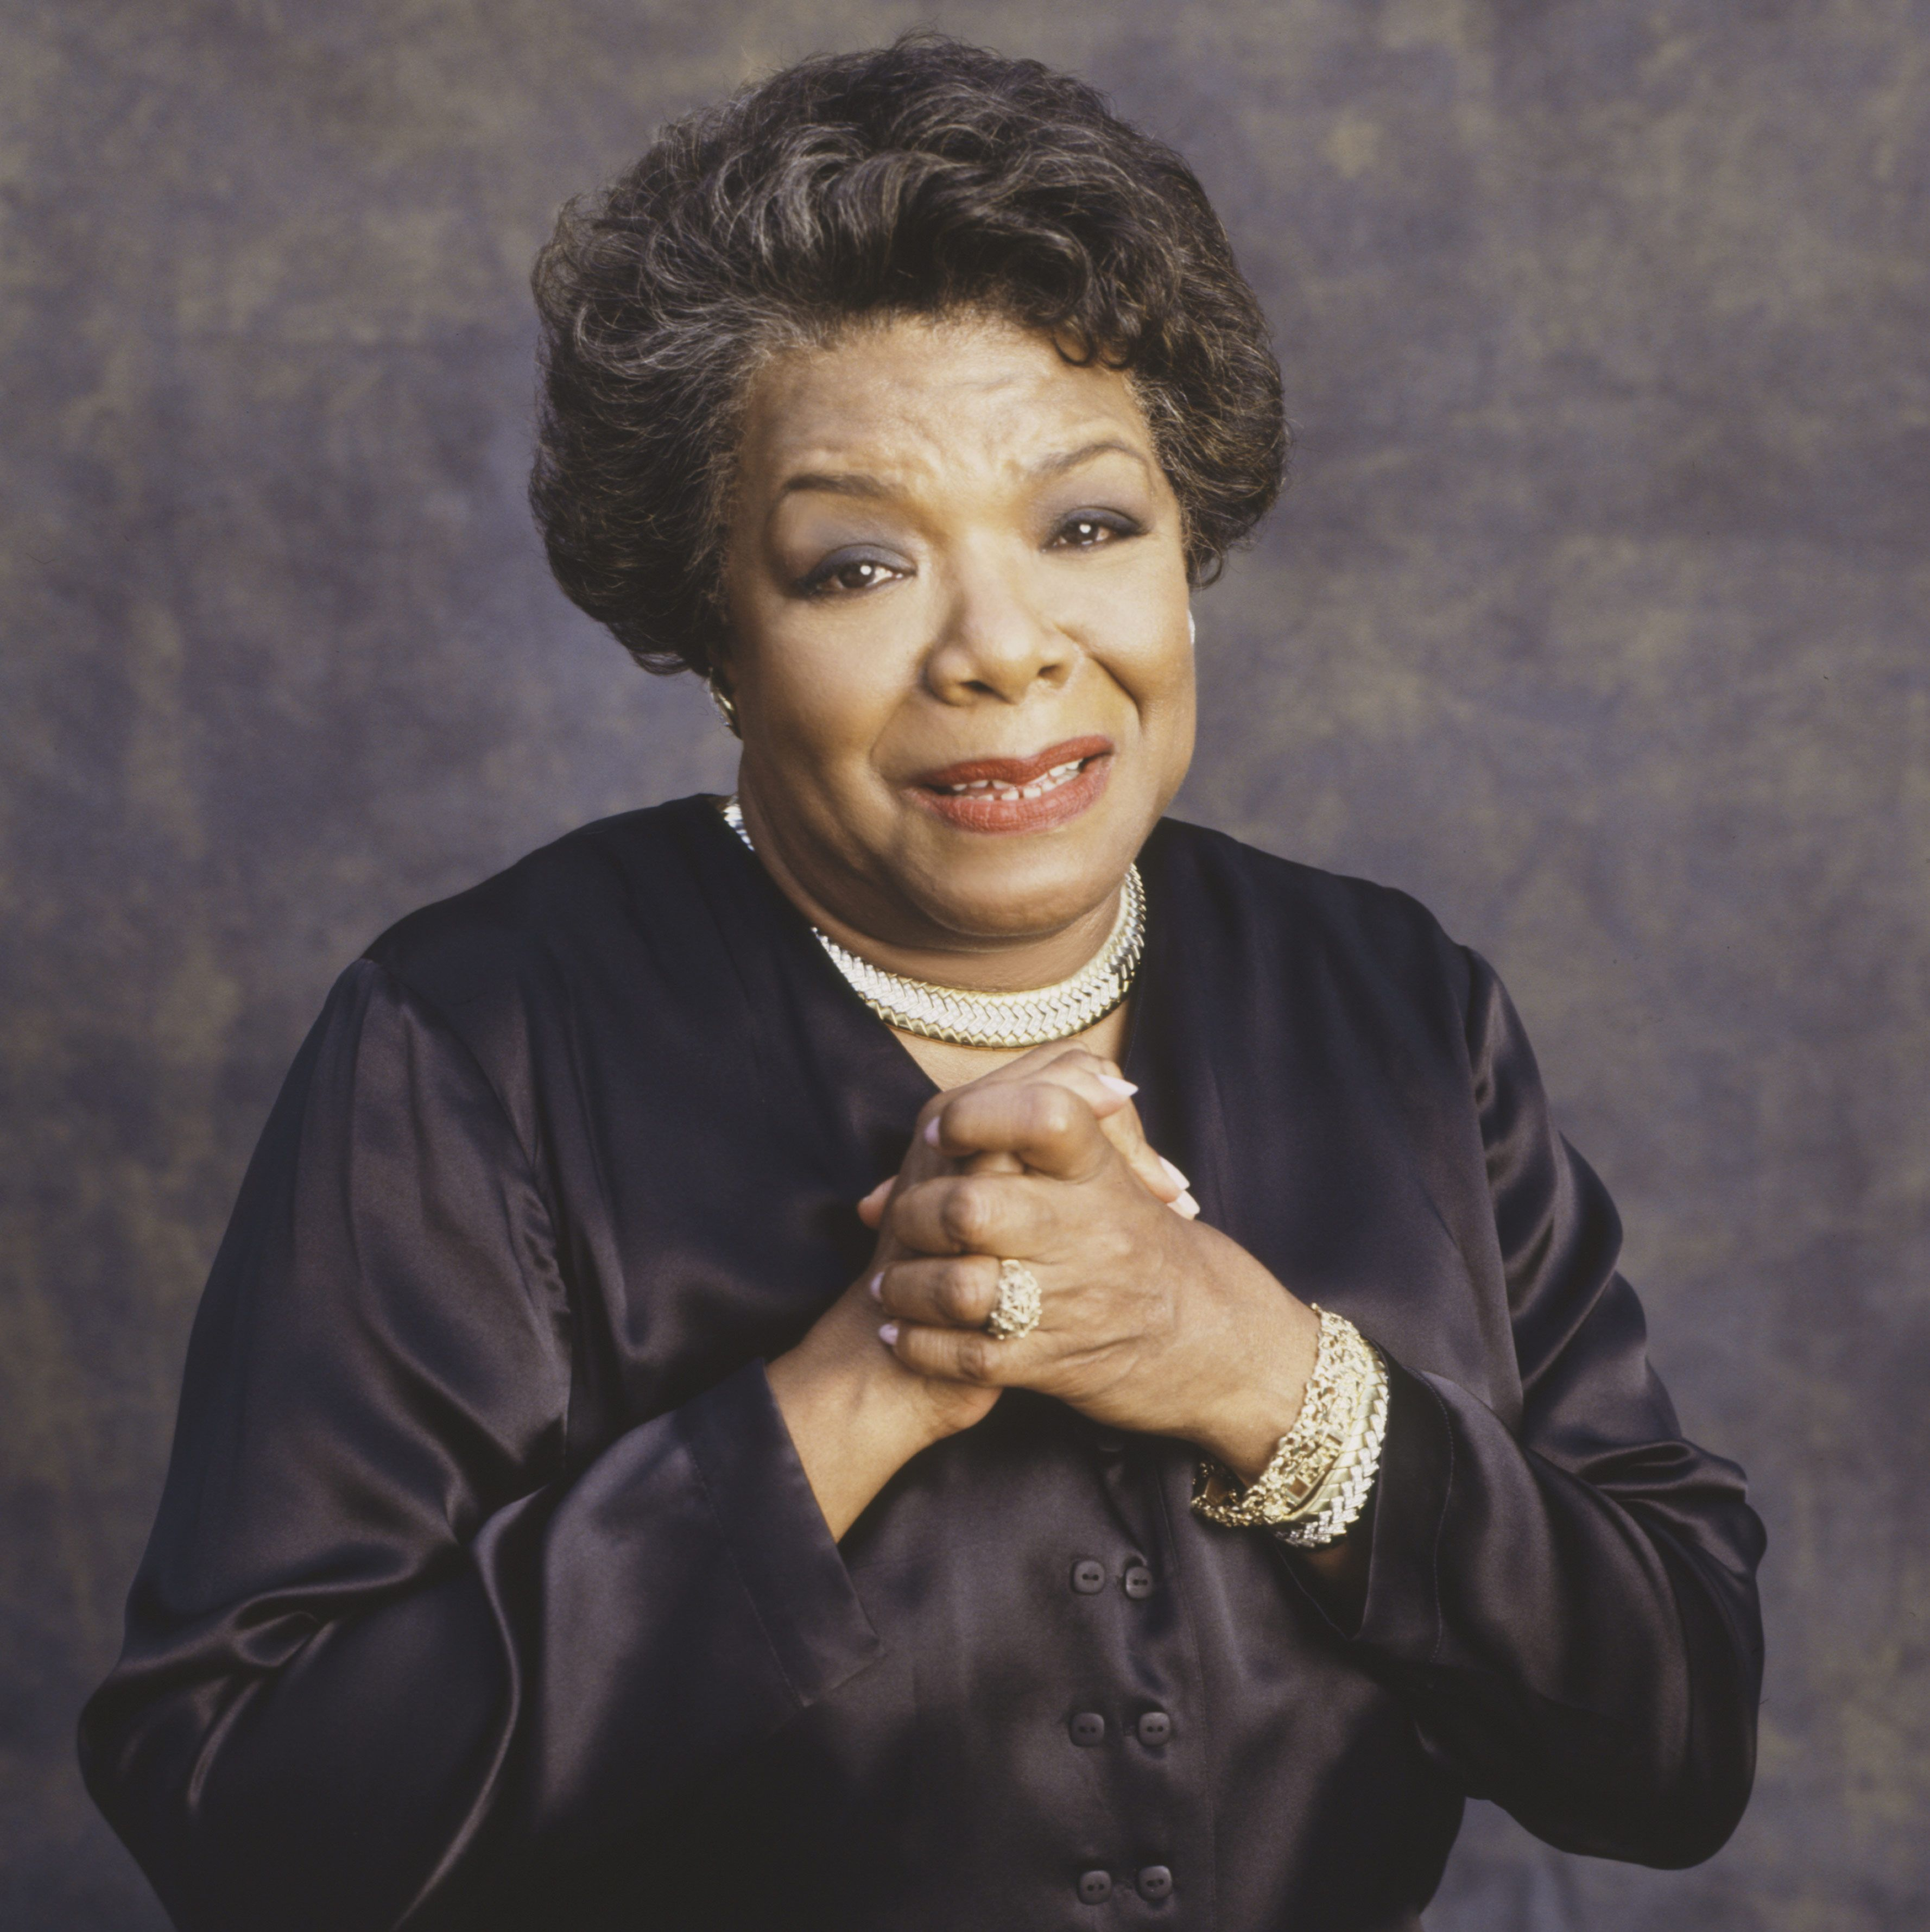 Maya Angelou's Life Story and Powerful Words Are Heading to Broadway